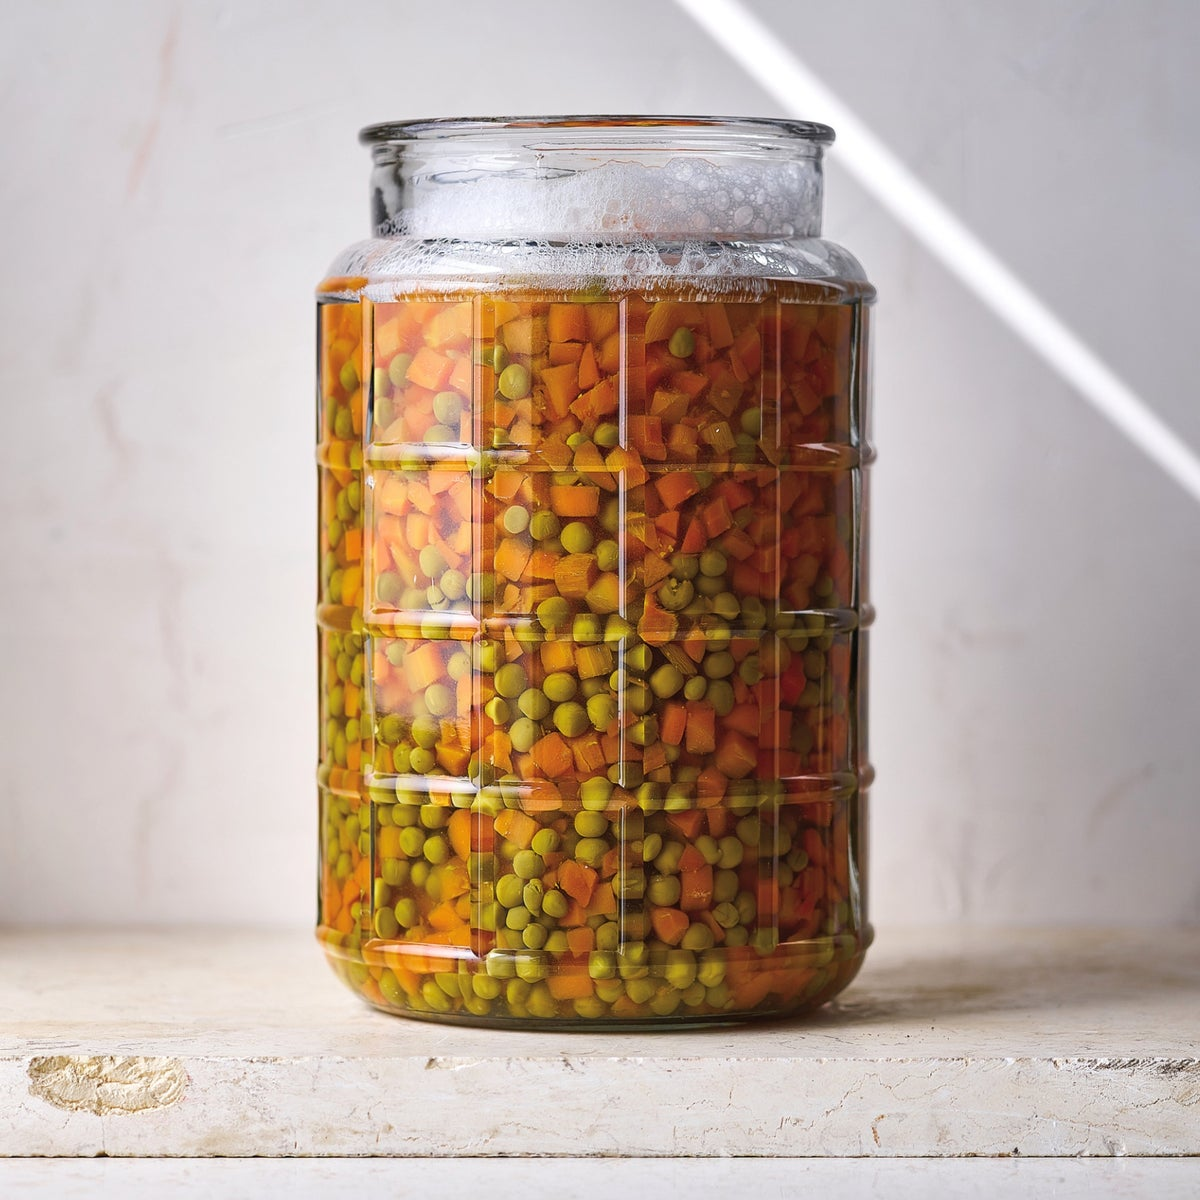 Canned peas and carrots.